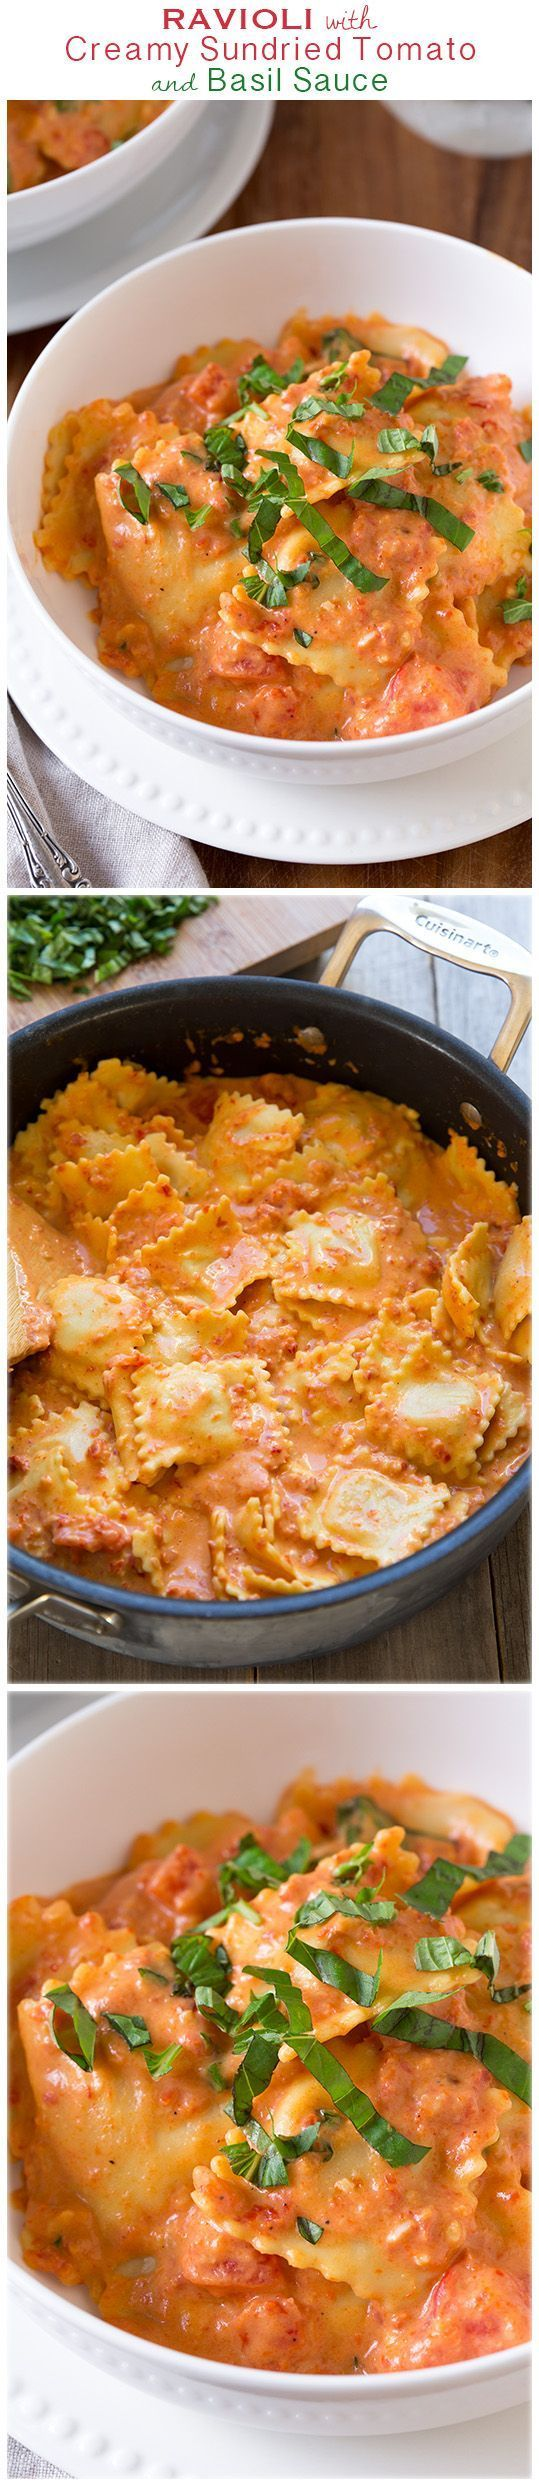 Ravioli with Creamy Sundried Tomato and Basil Sauce - this was unbelievably DELISH! I'm adding this one to the rotation!